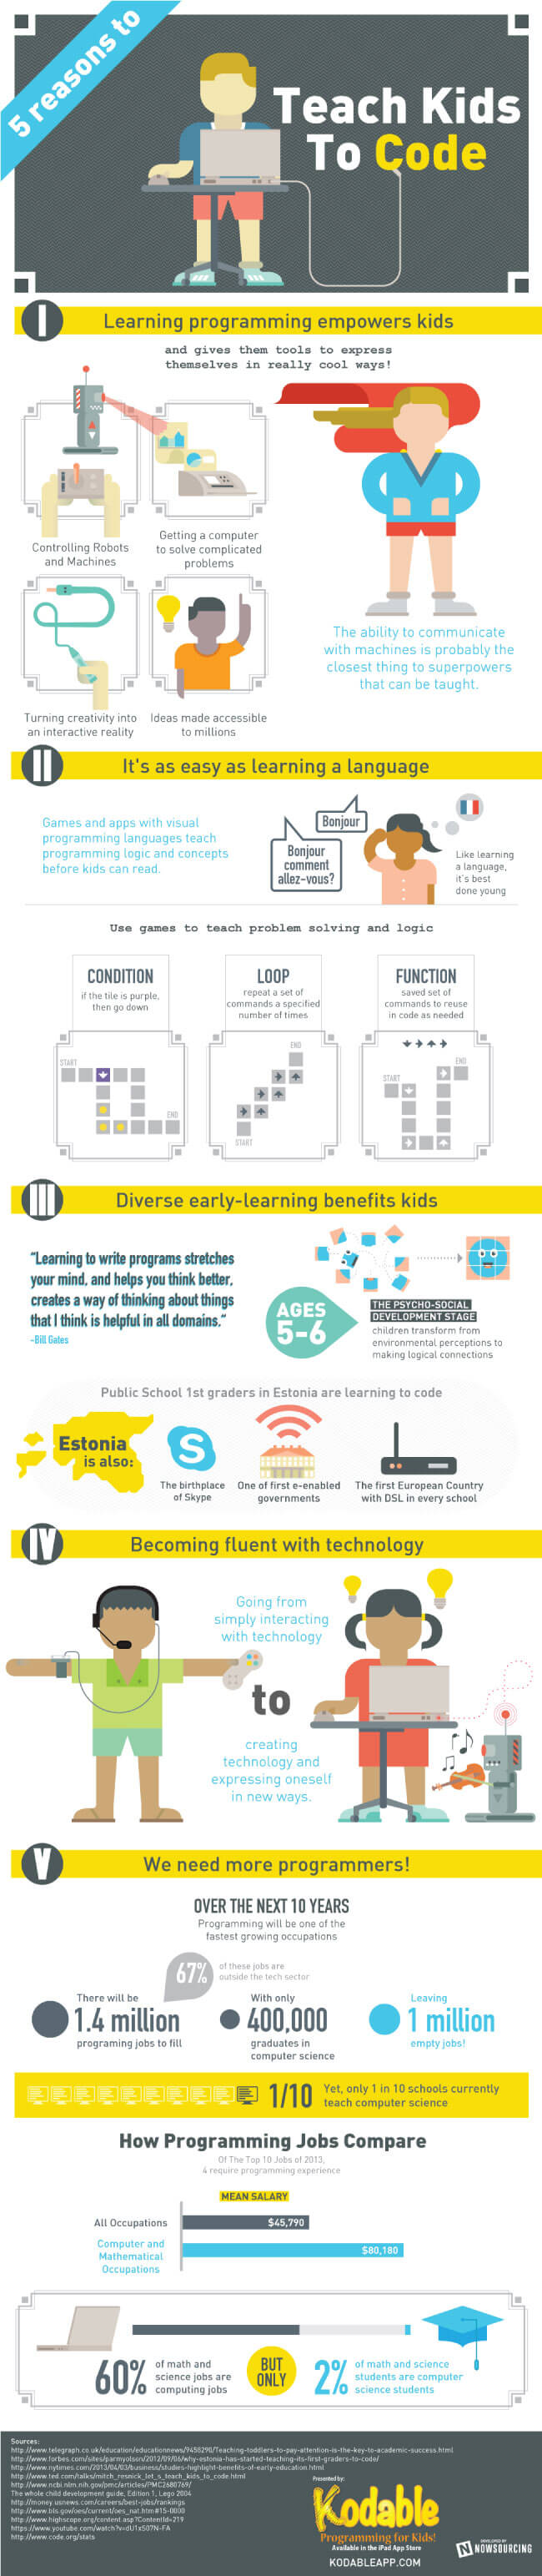 Image titled '5 Fascinating Reasons Why Your Child Should Learn to Code'